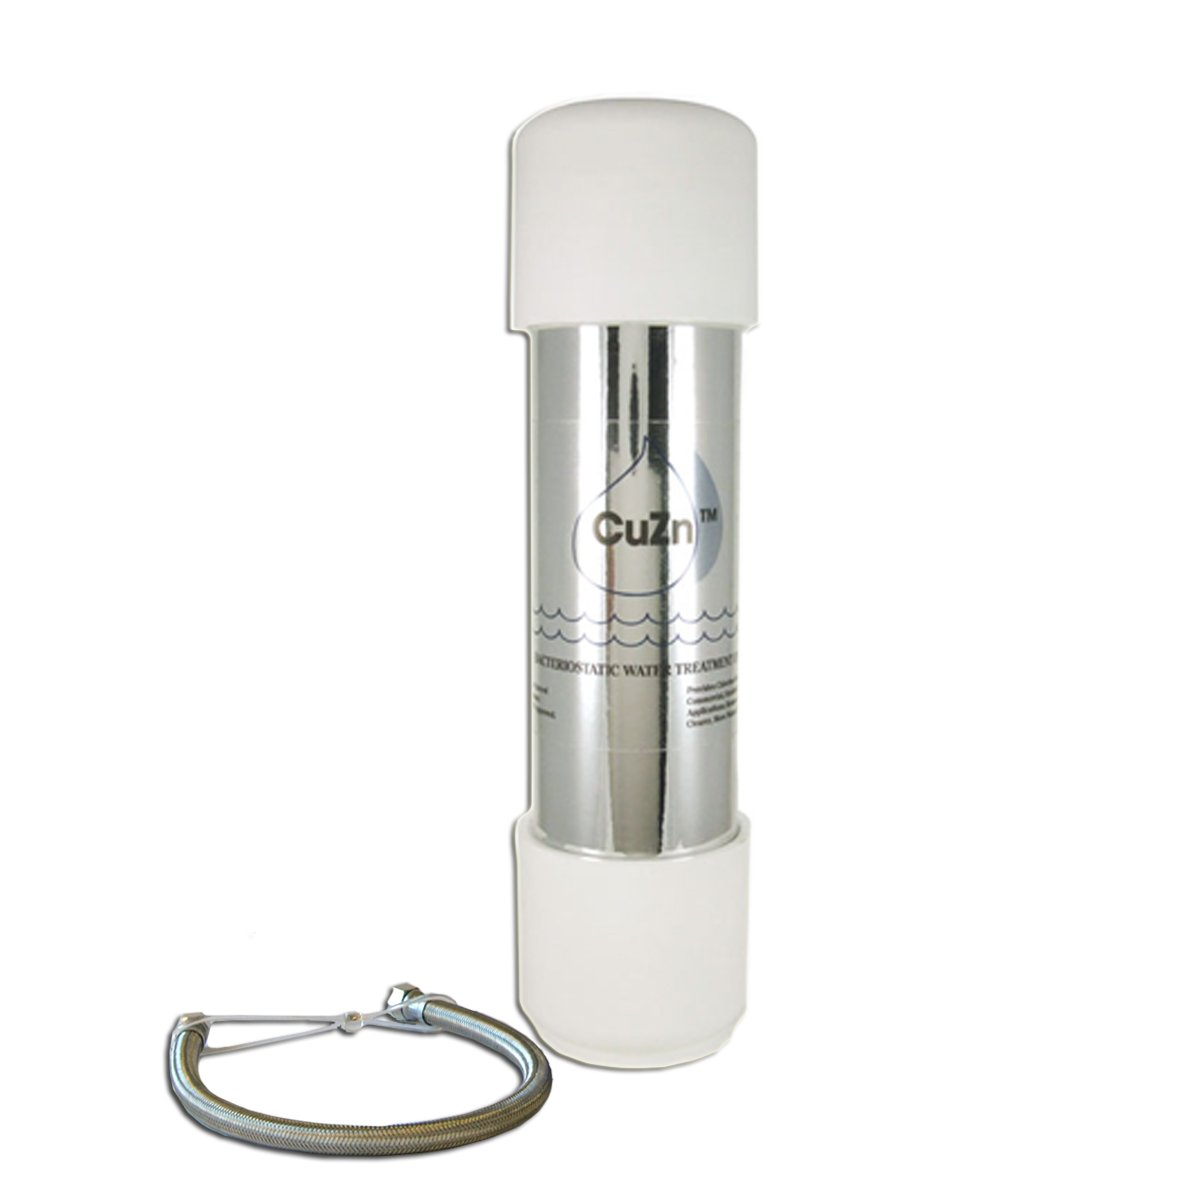 CuZn UC-200 Under Counter Water Filter - 50K Ultra High Capacity - Made in USA by CuZn Water Systems (Image #1)